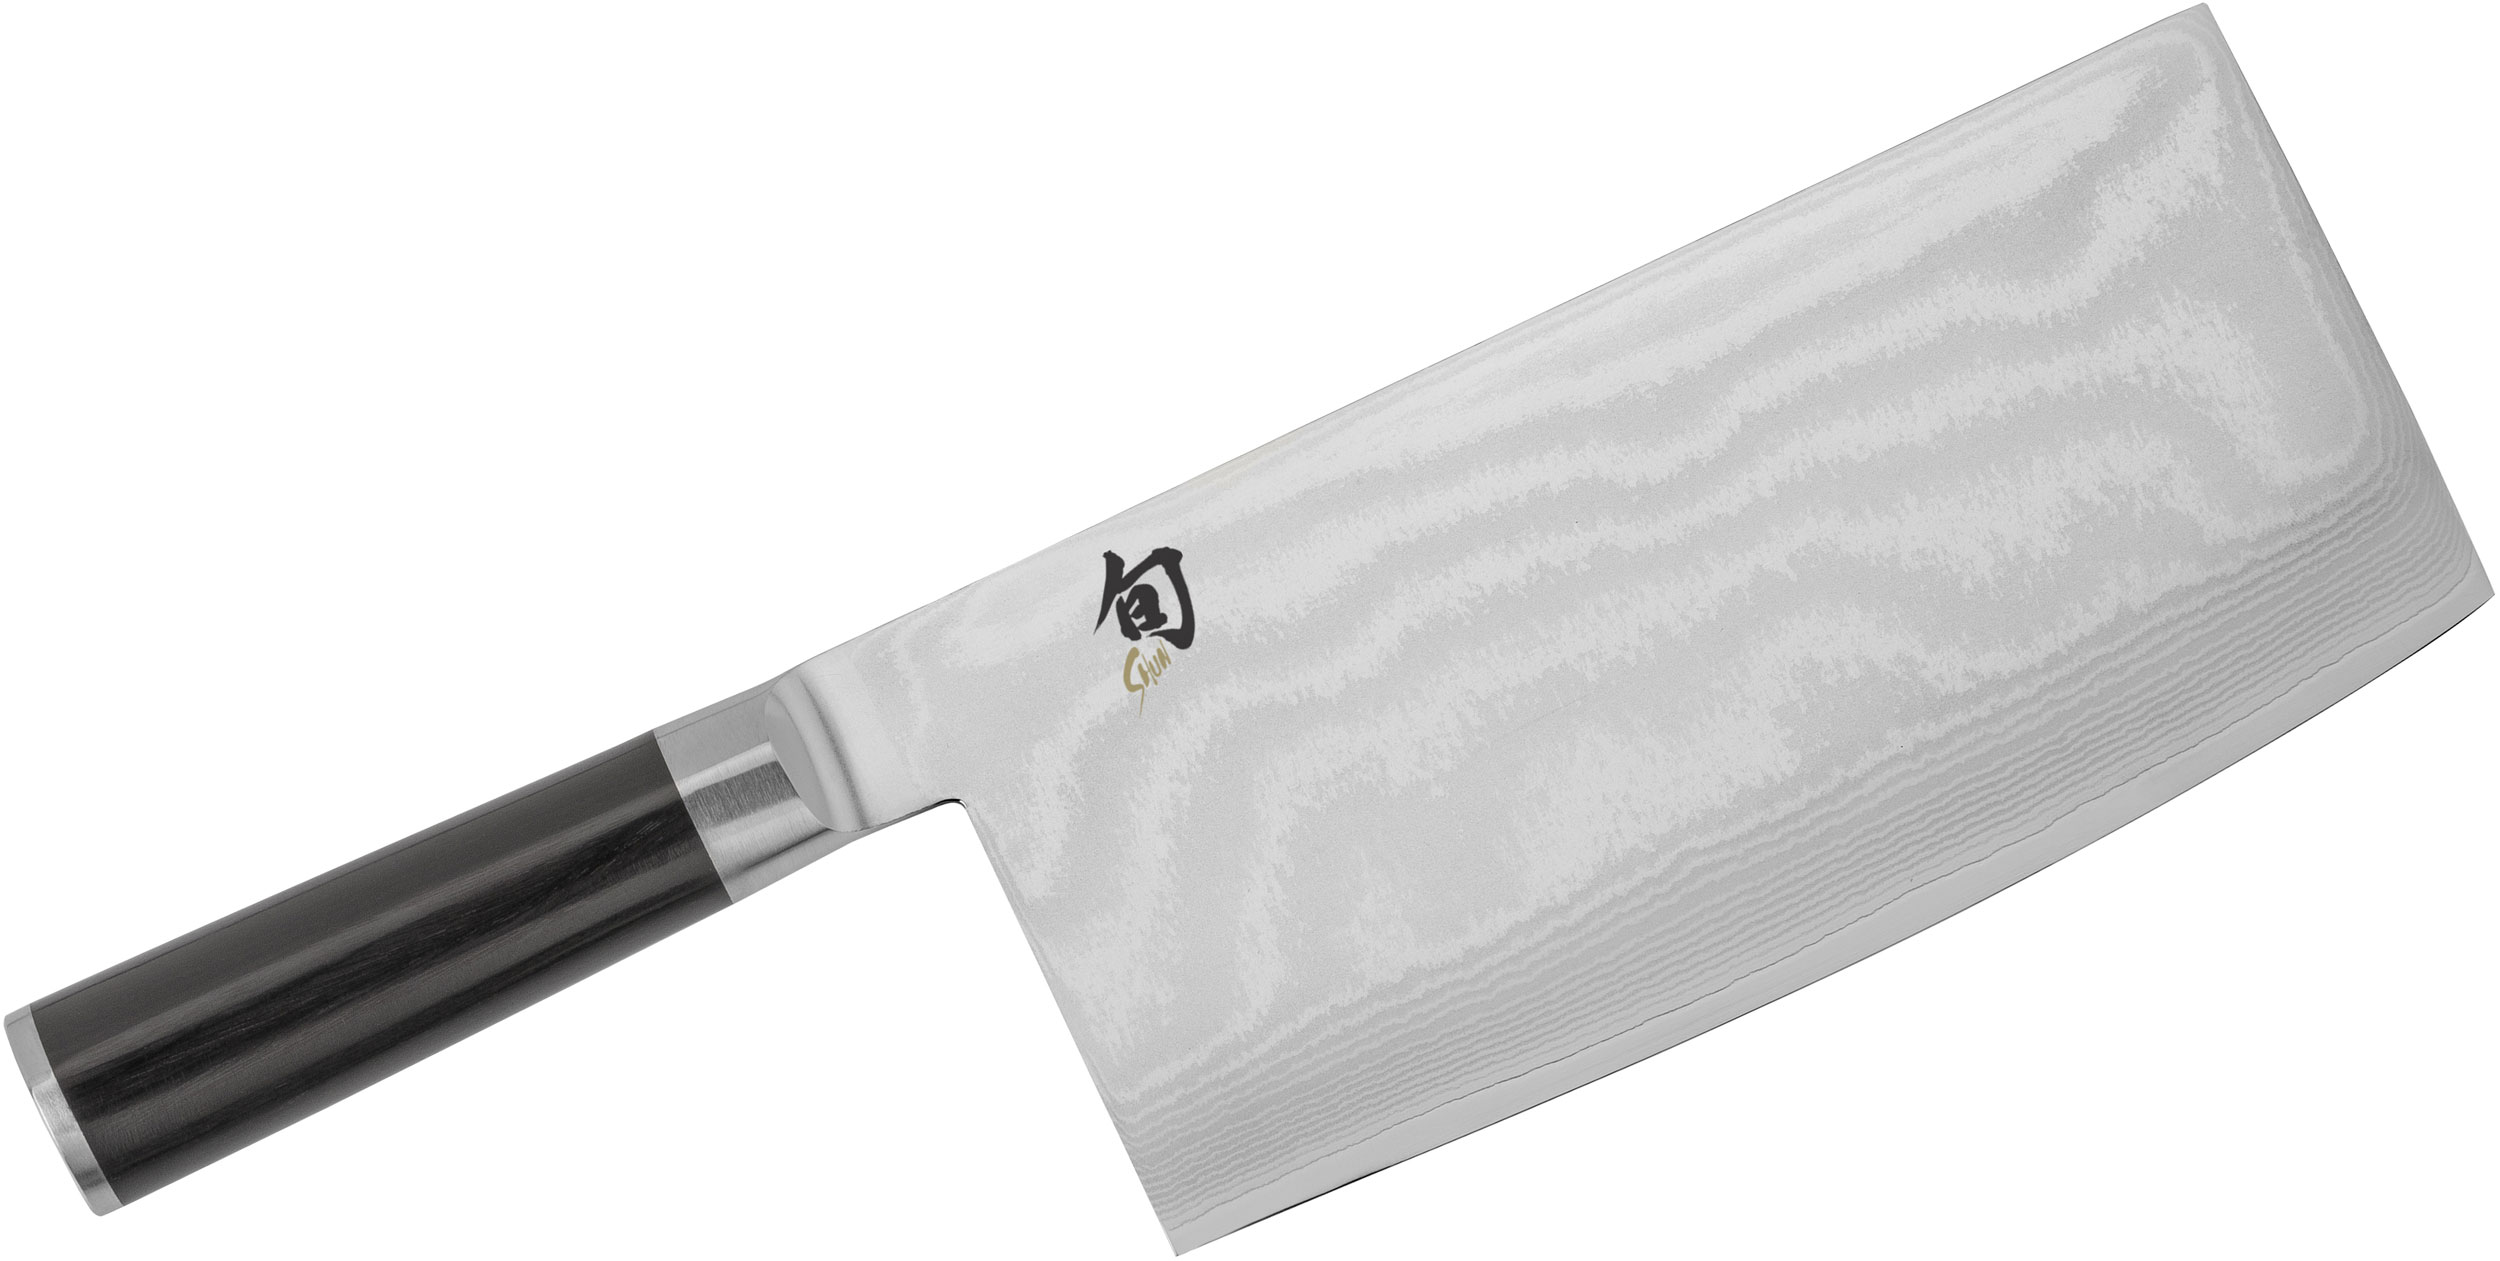 Shun DM0712 Classic Vegetable Cleaver 7.75 inch Blade, Pakkawood Handle